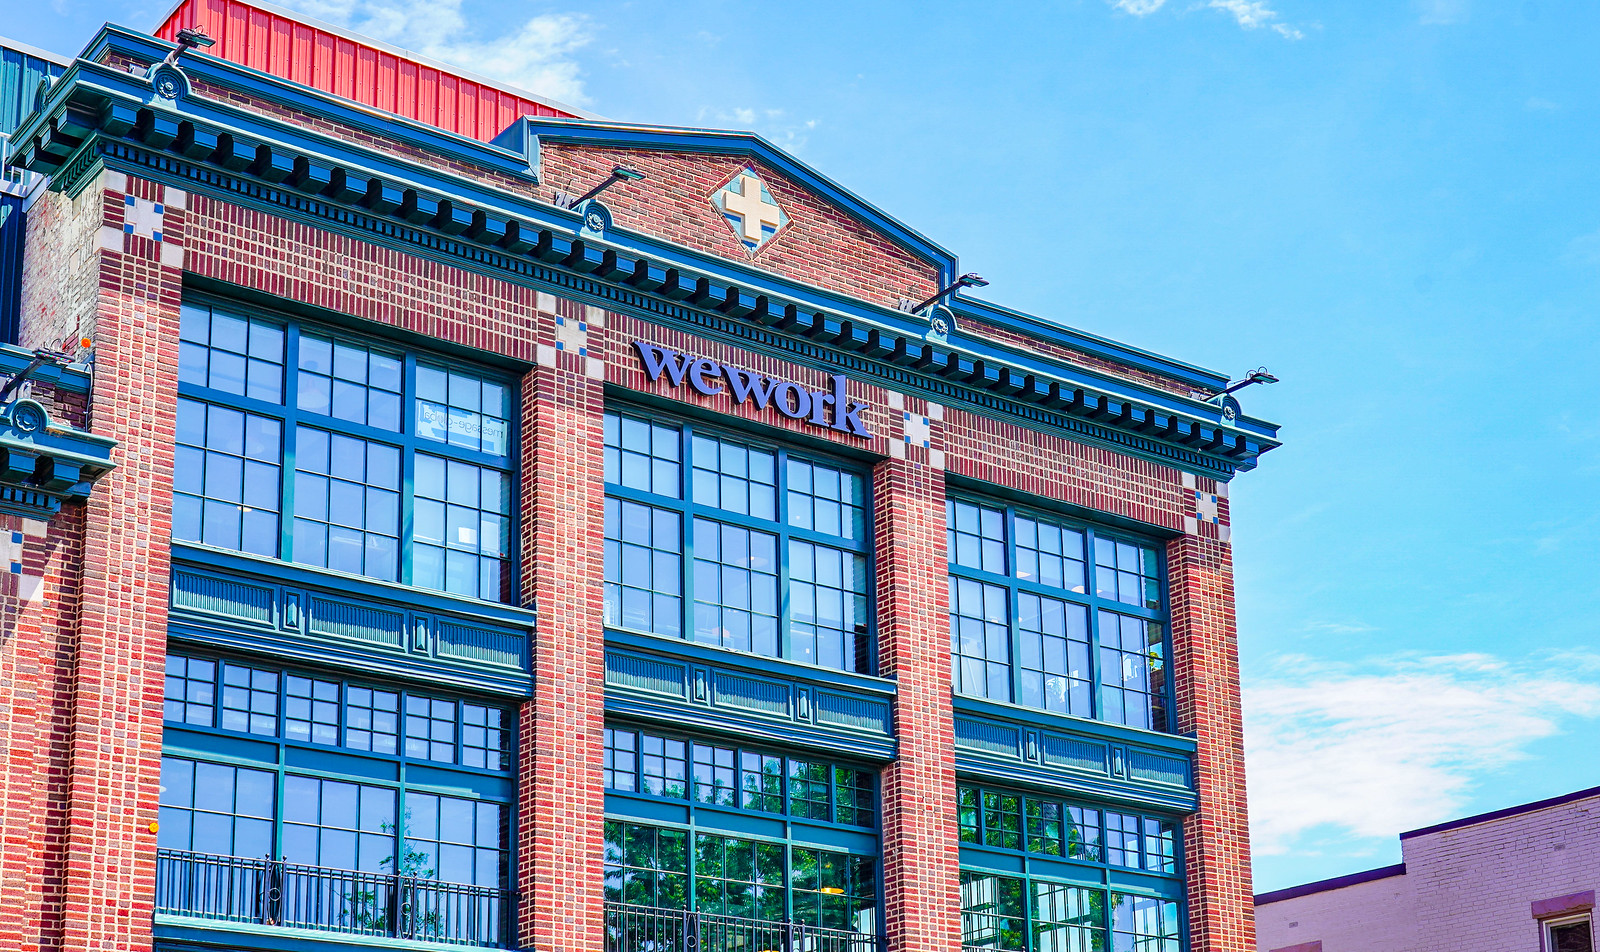 Thank you for publishing my photo, in Amid The Pandemic, WeWork Is Still Charging D.C. Members For Co-Working Space | DCist